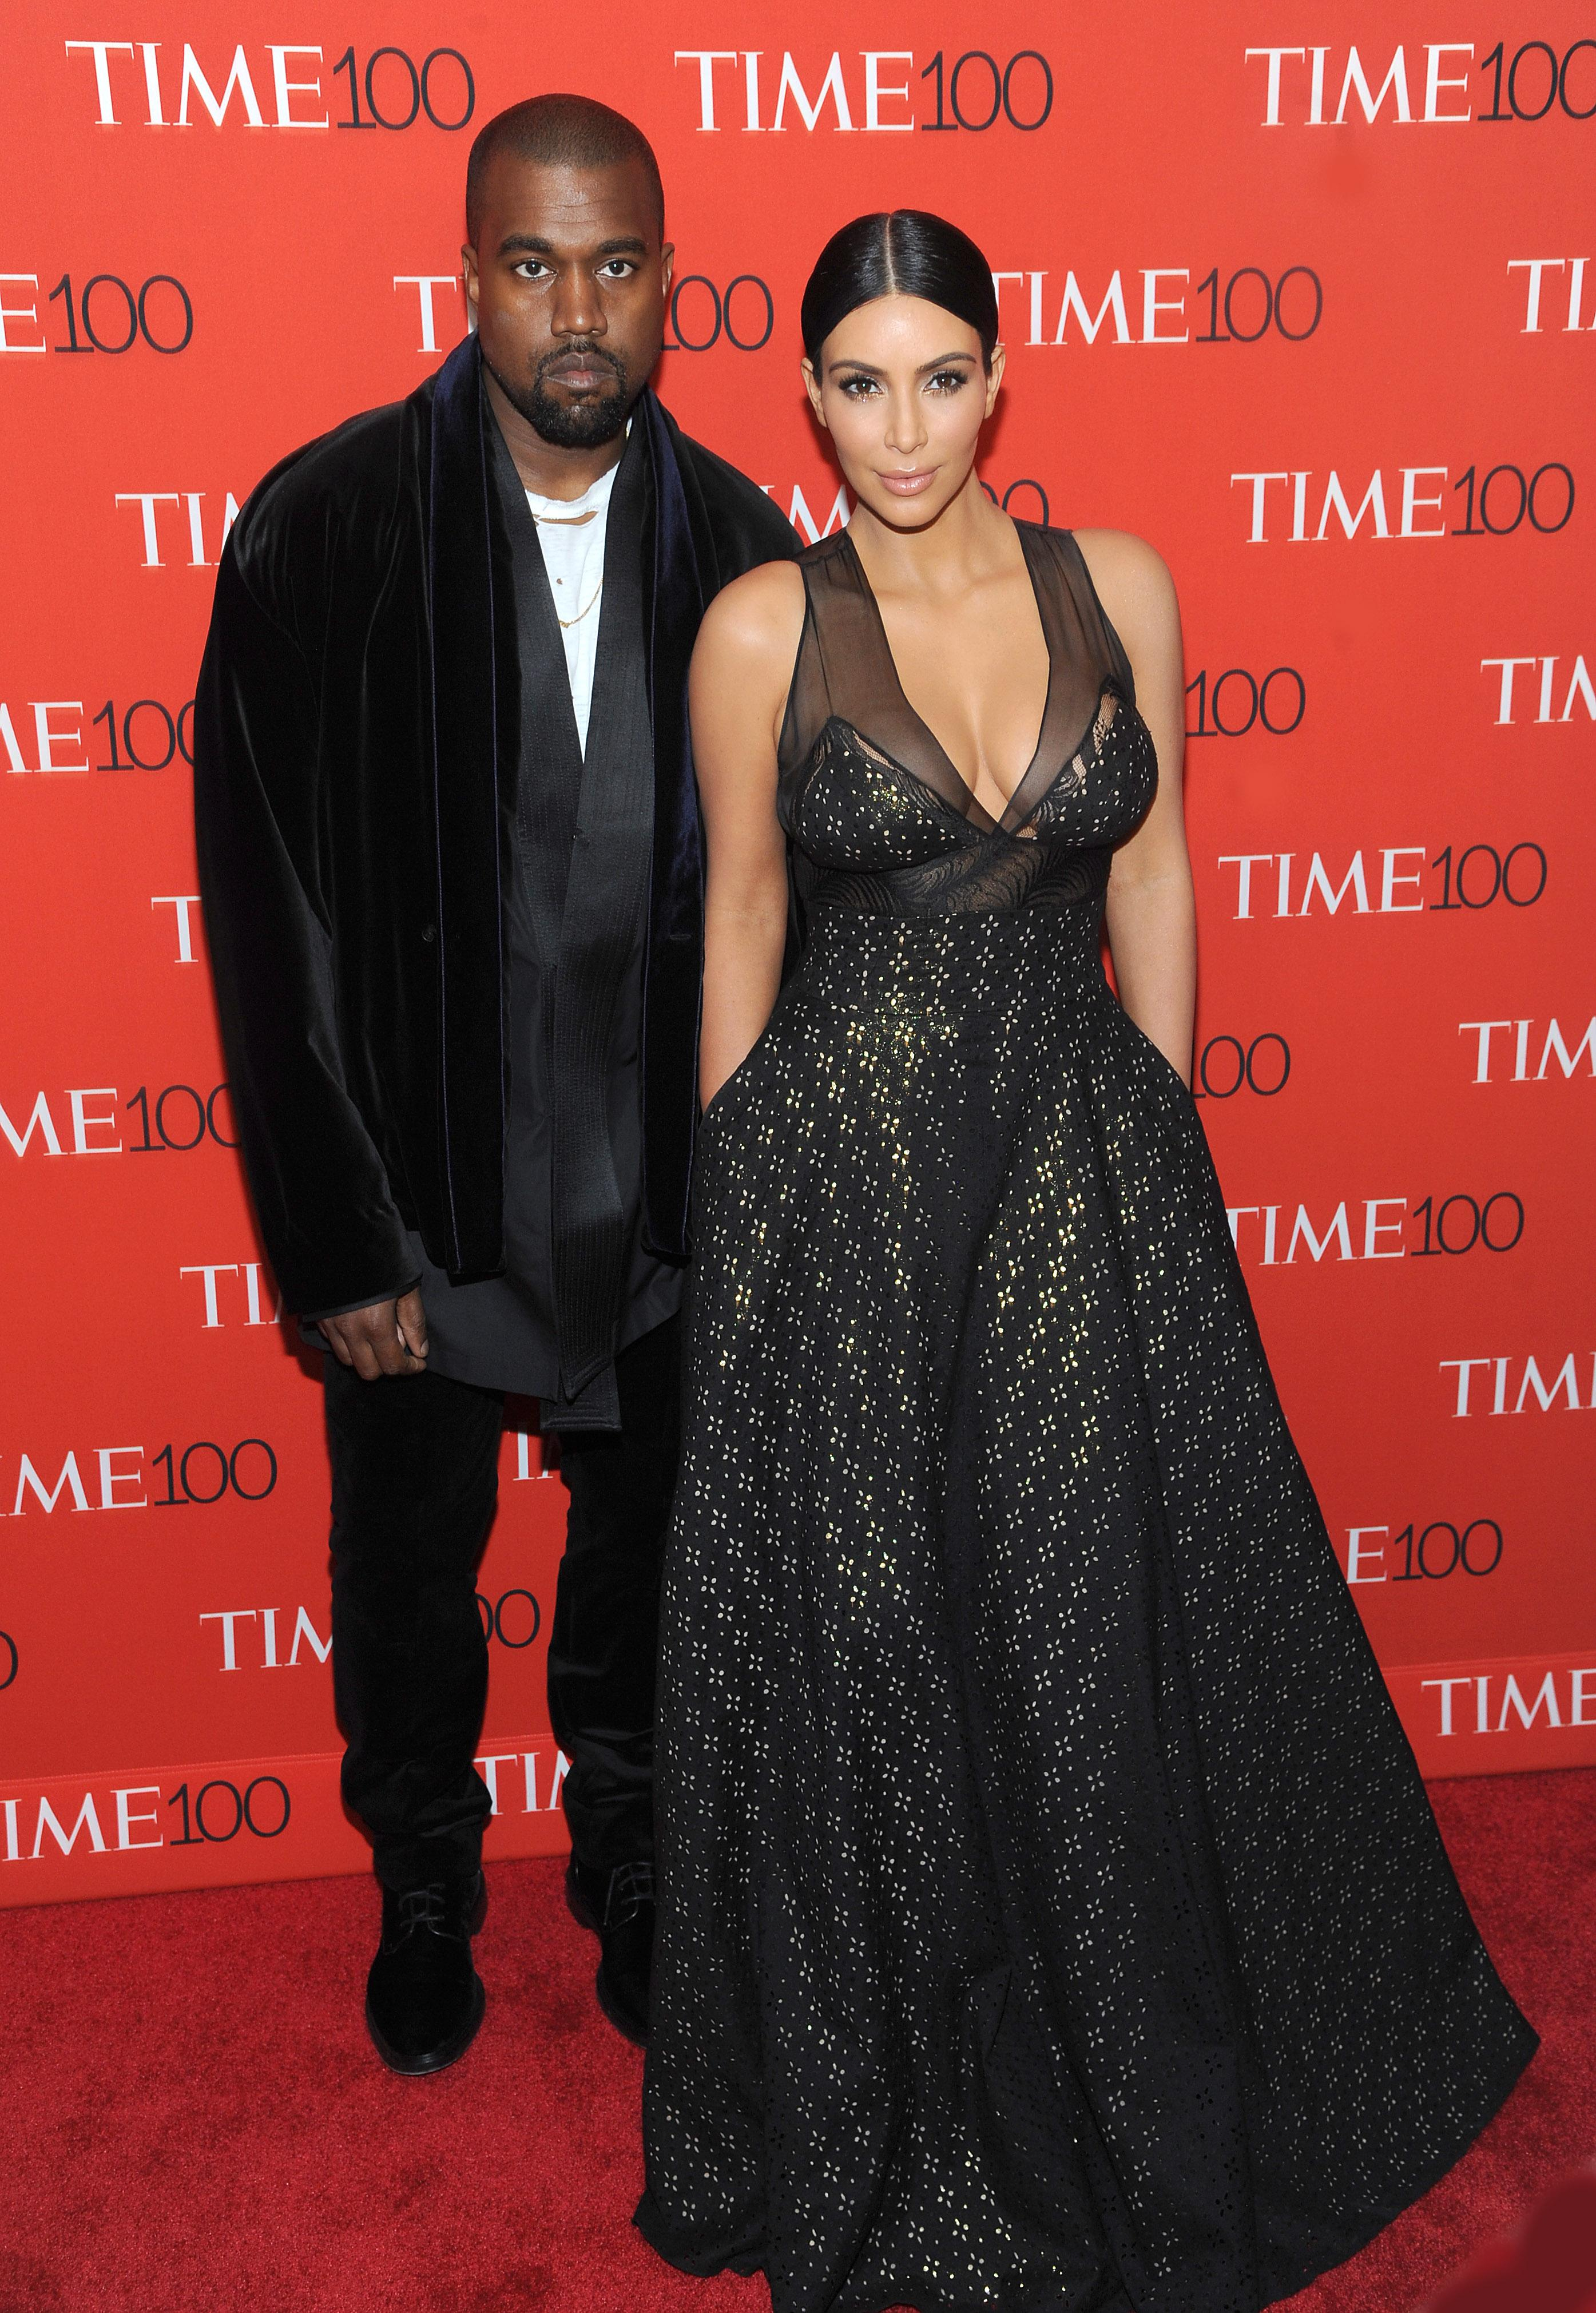 New York, NY- April 21: Kanye West And Kim Kardashian West Attend The TIME 100 Gala At The Frederick P. Rose Hall On April 21, 2015 In New York City.КРЕДИТ Capital Pictures/Legion Media